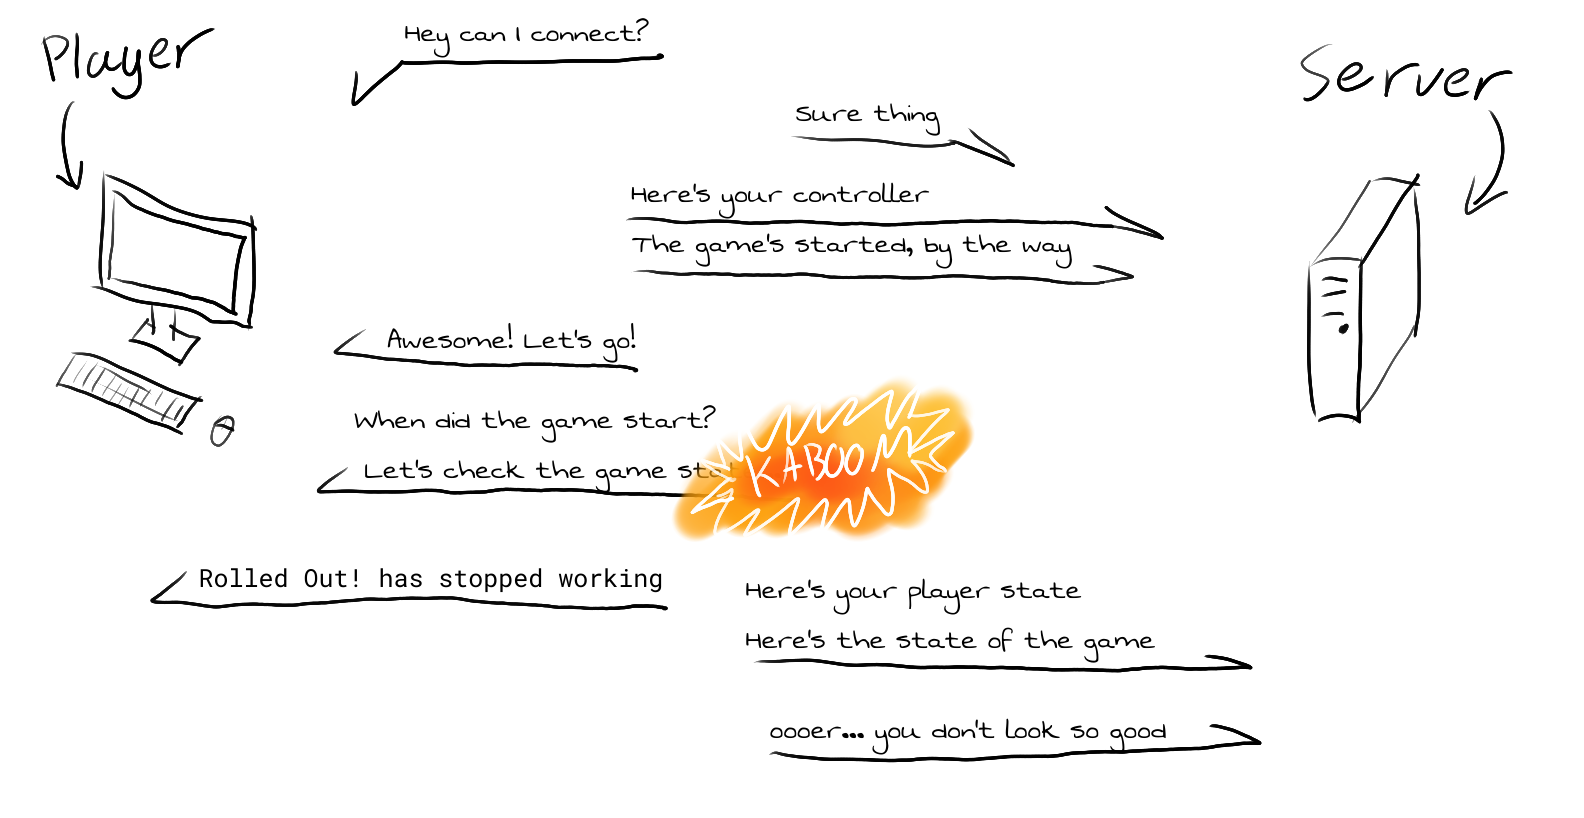 The player connection process when stuff goes badly